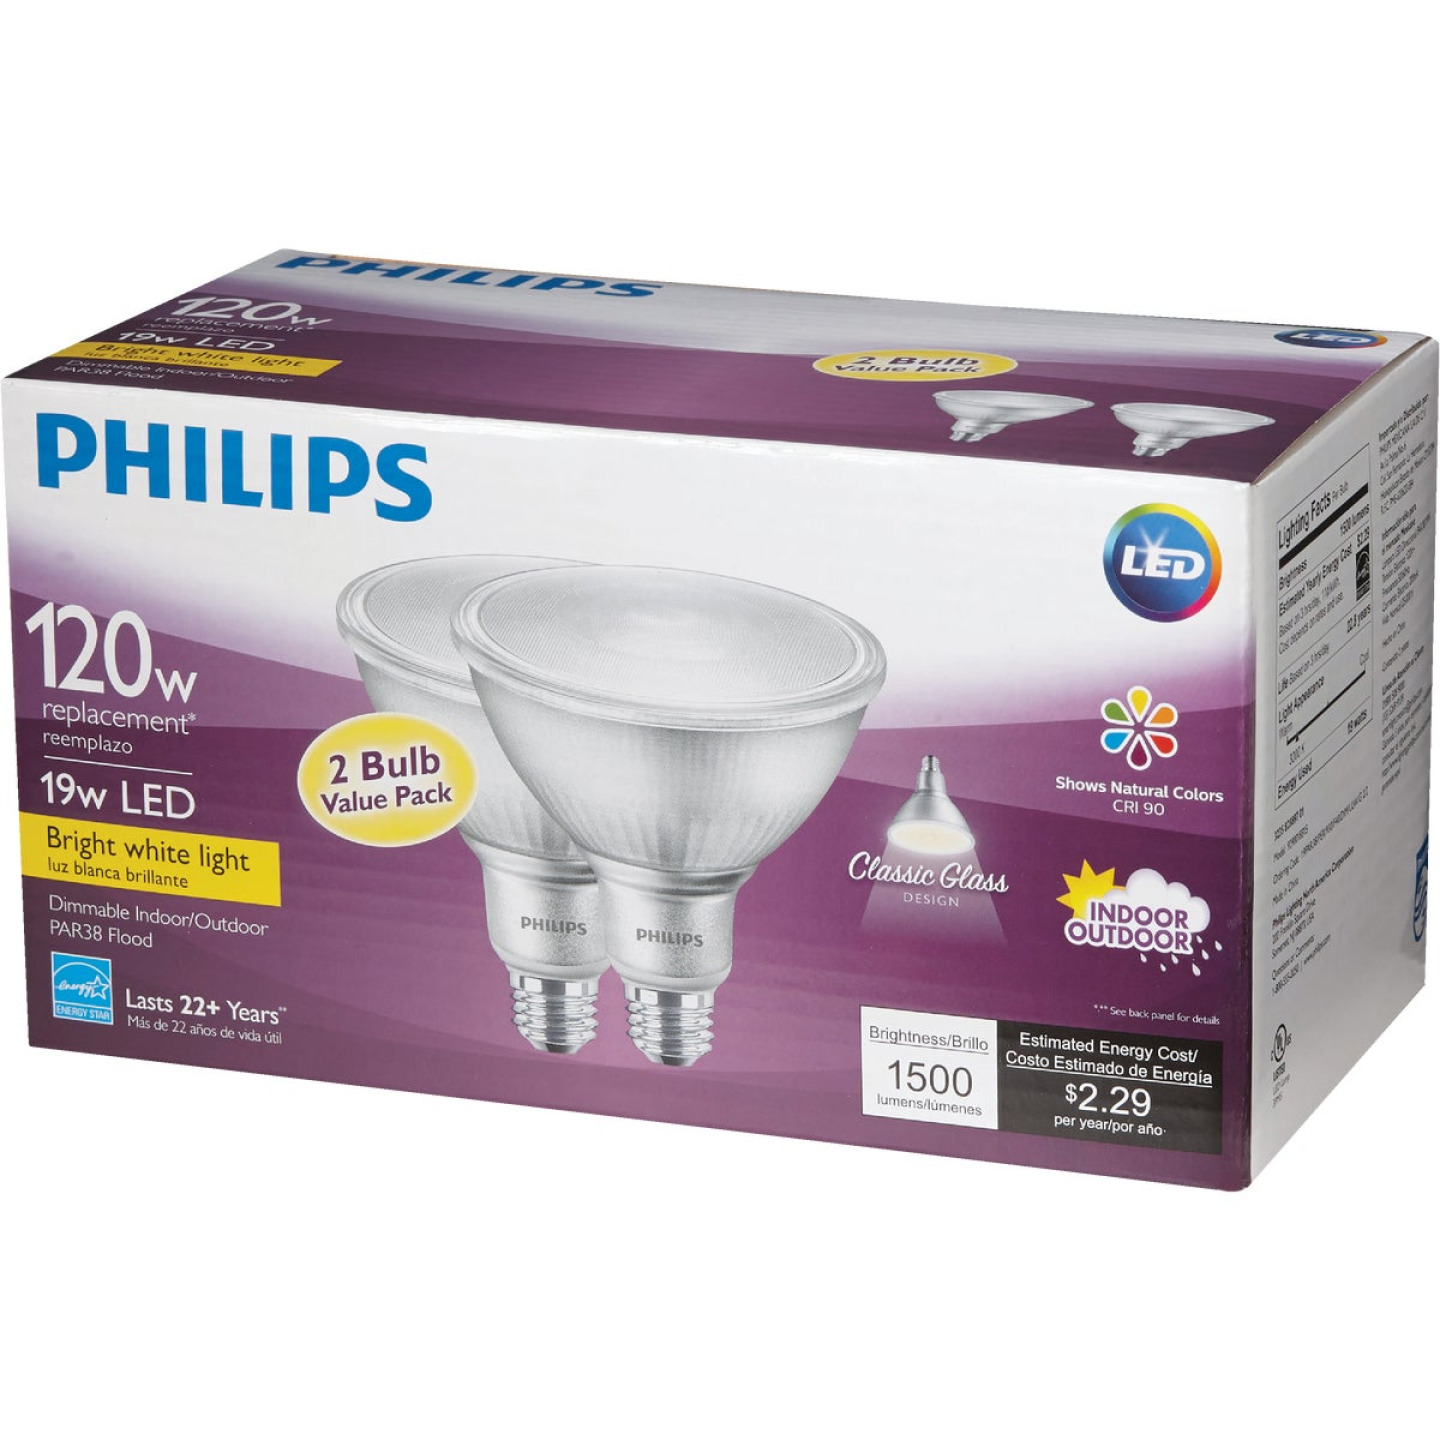 Philips 120W Equivalent Bright White PAR38 Medium Indoor/Outdoor LED Floodlight Light Bulb (2-Pack) Image 5